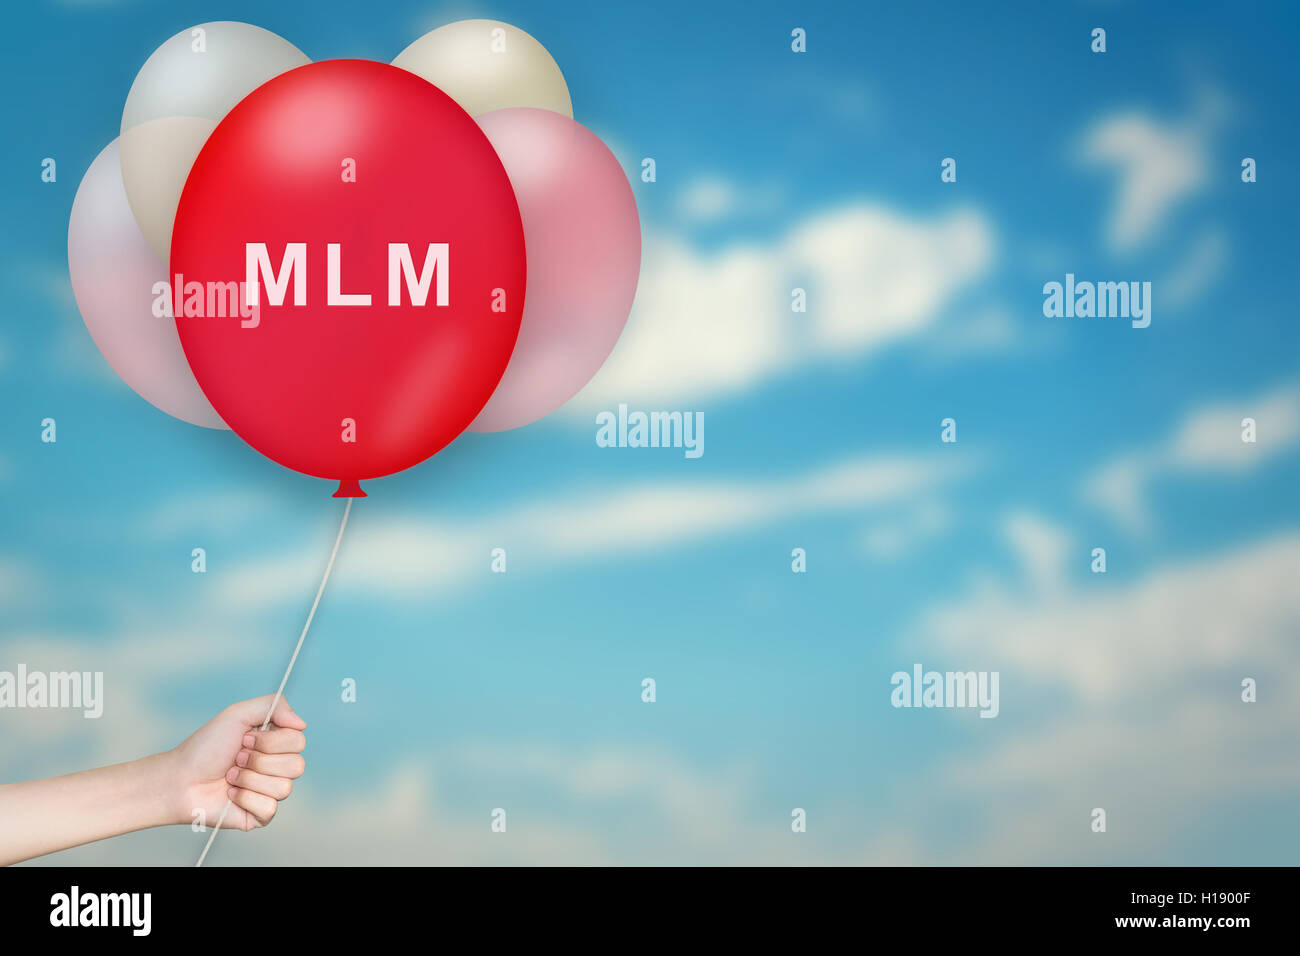 Hand Holding MLM or Multi level marketing Balloon with sky blurred background Stock Photo